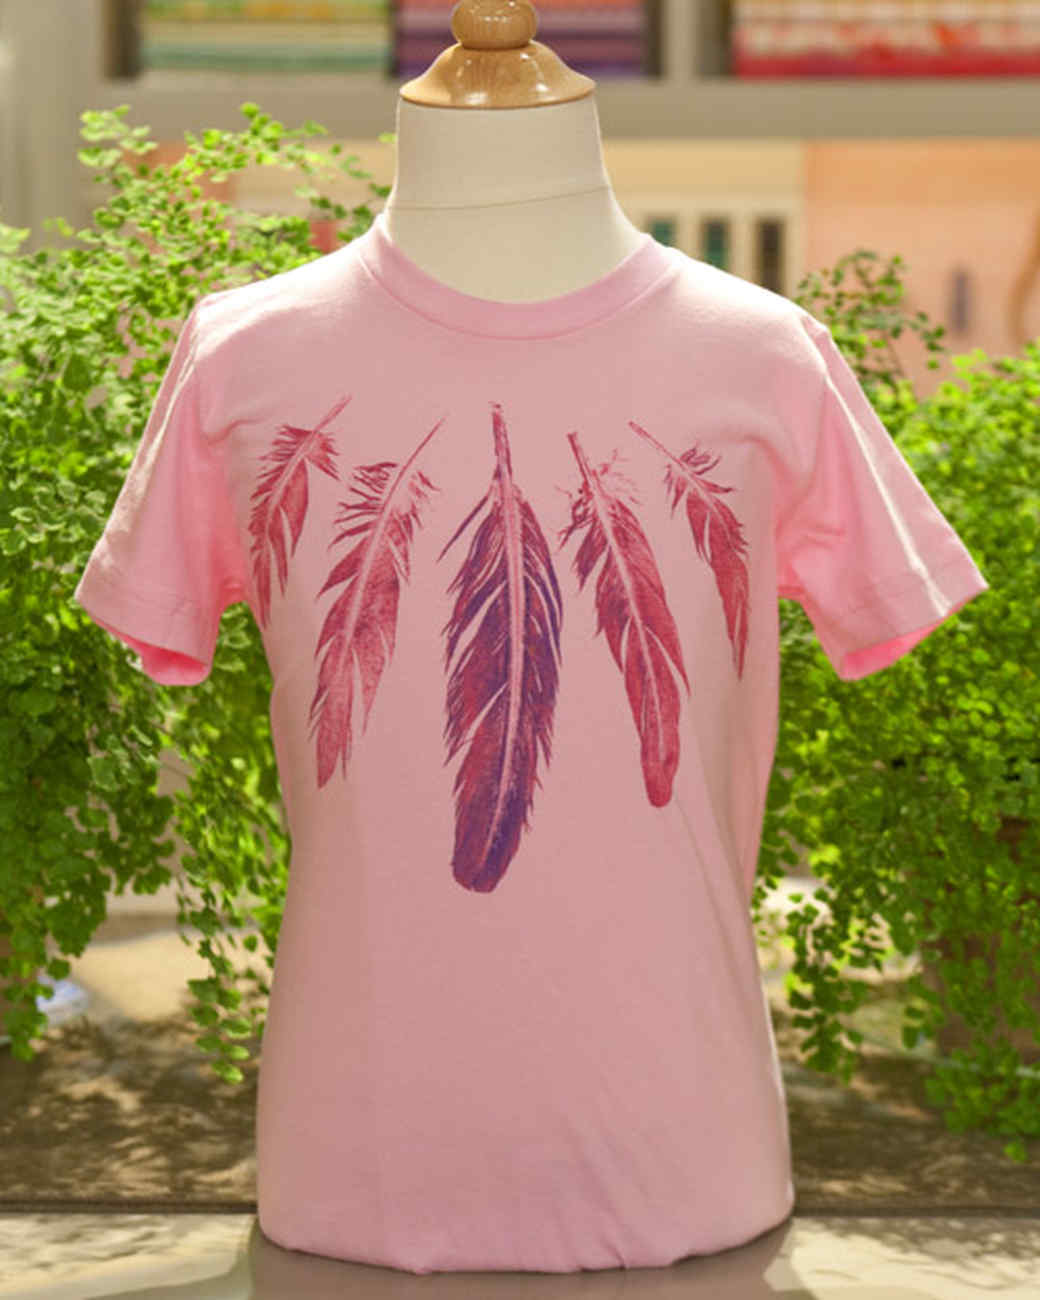 Feather-Printed T-Shirt Craft